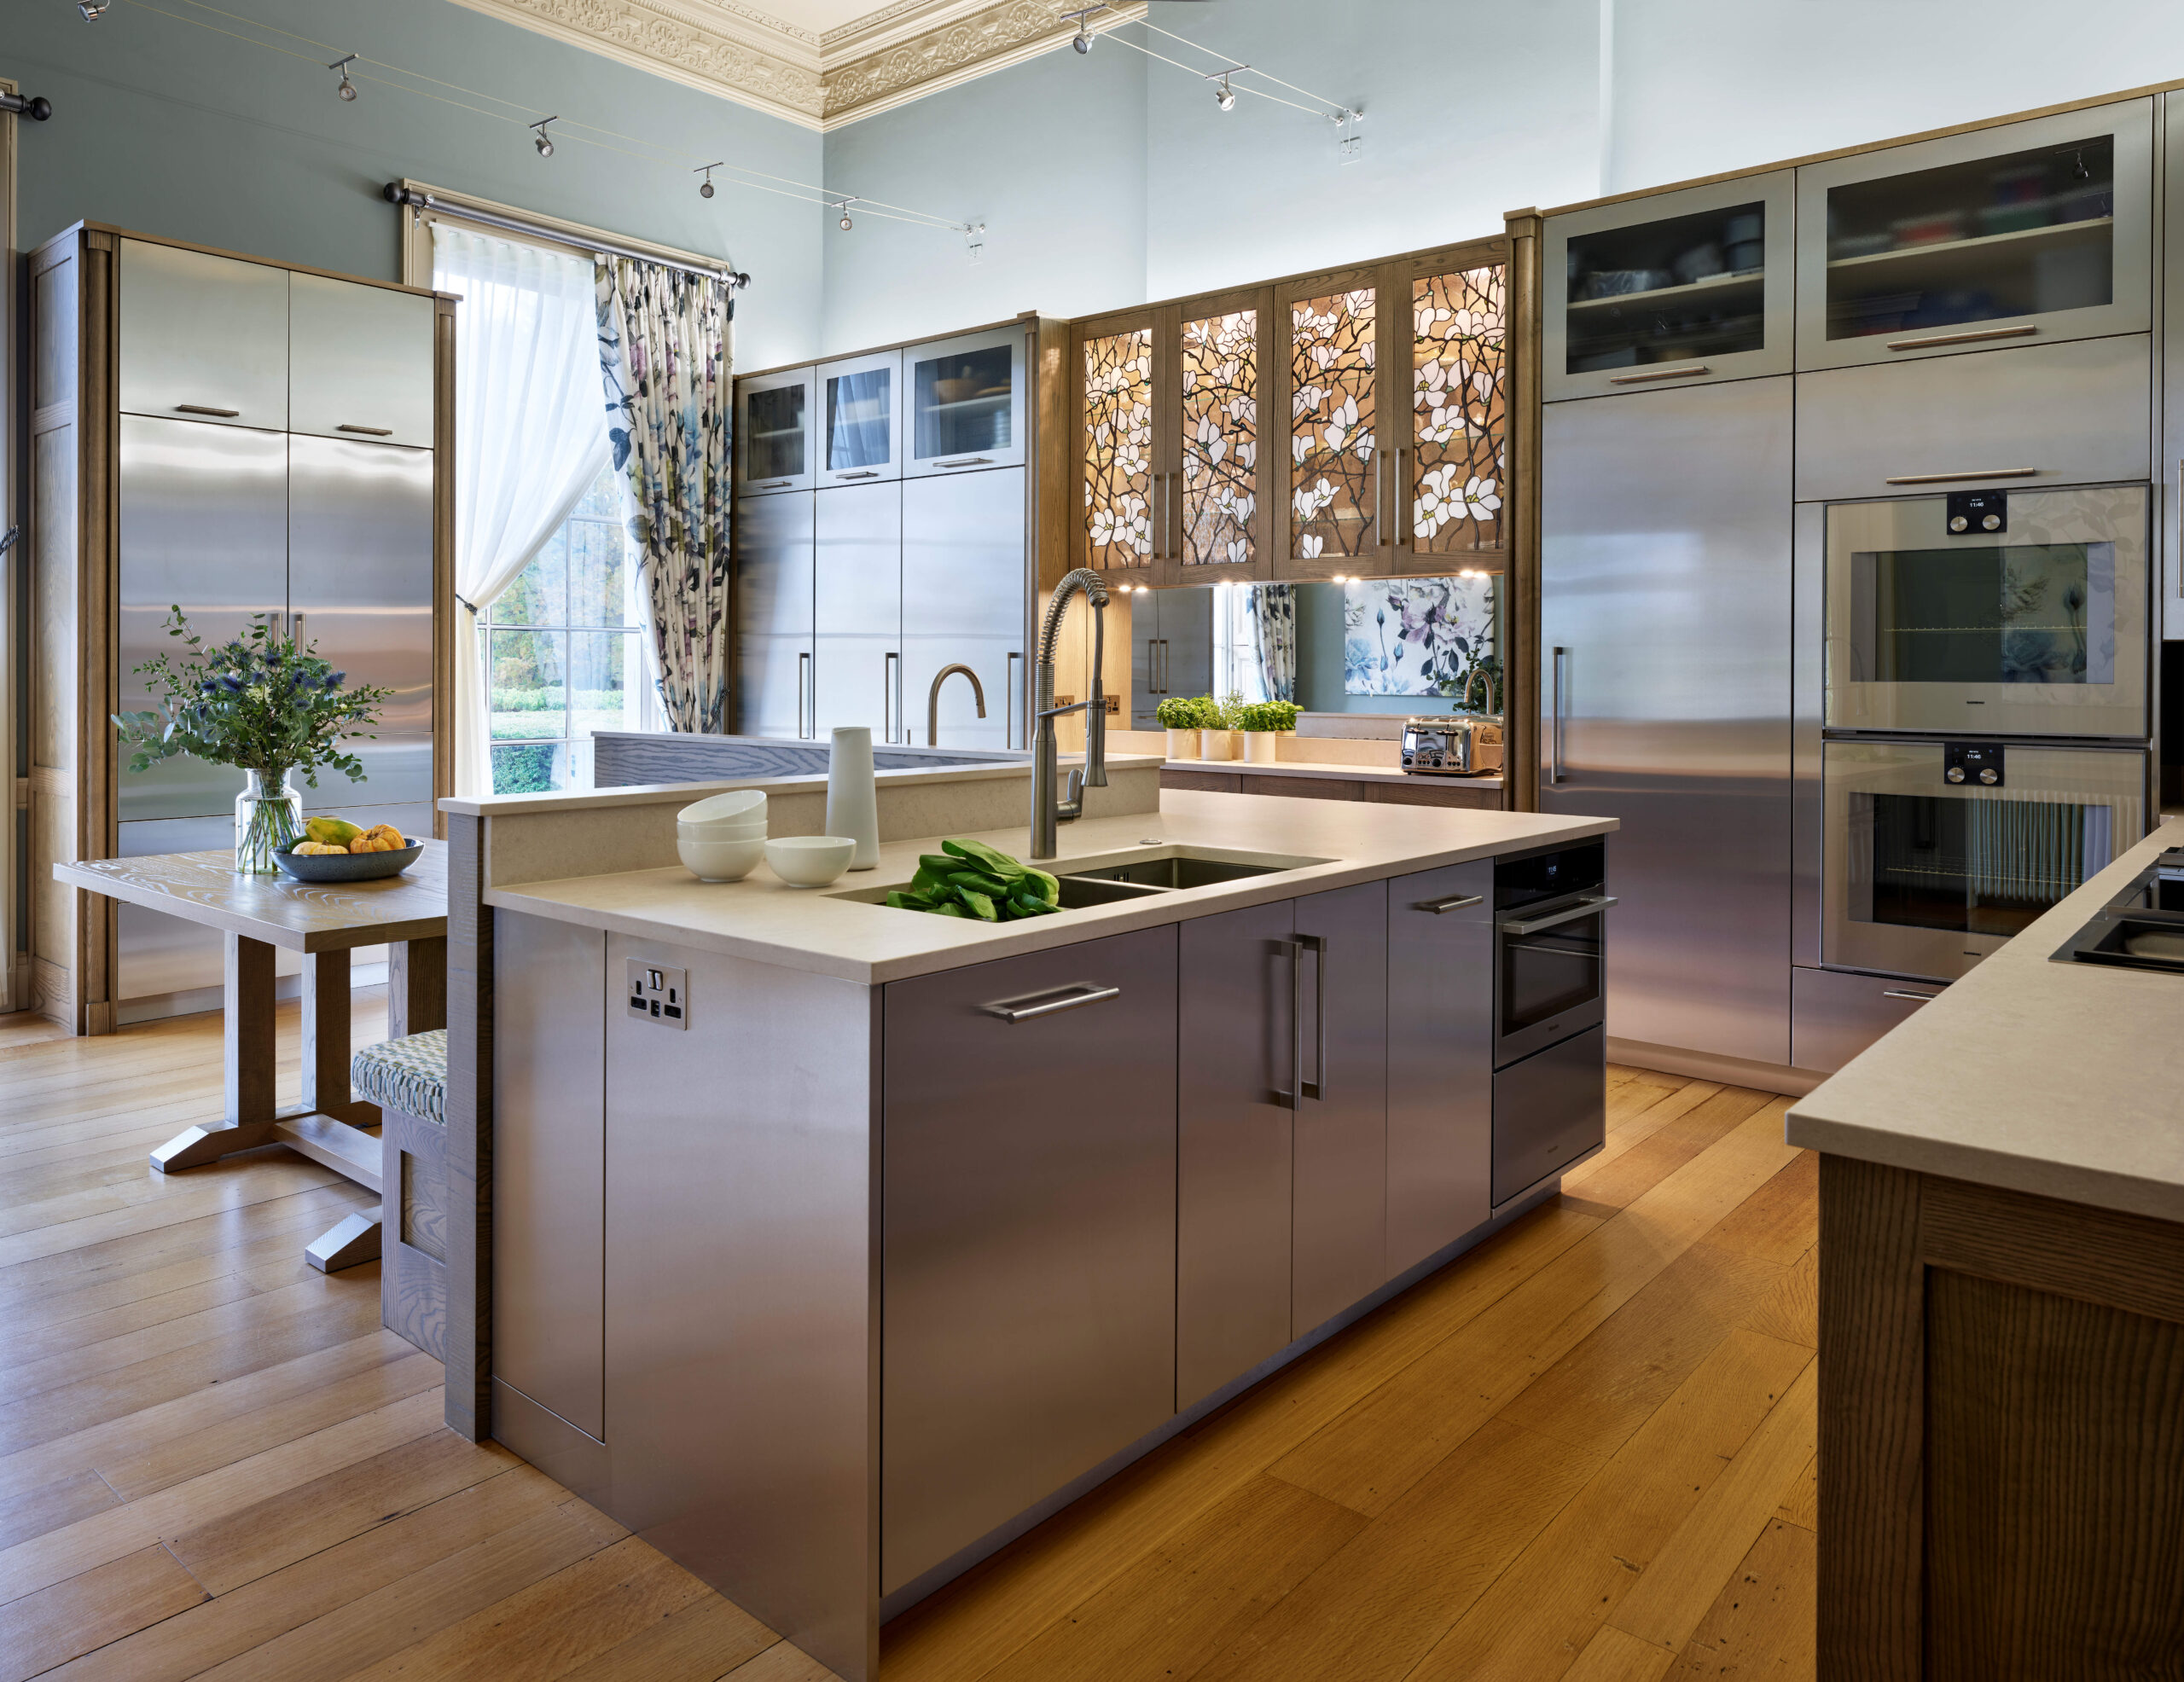 The Kitchen Think - Purley Case Study